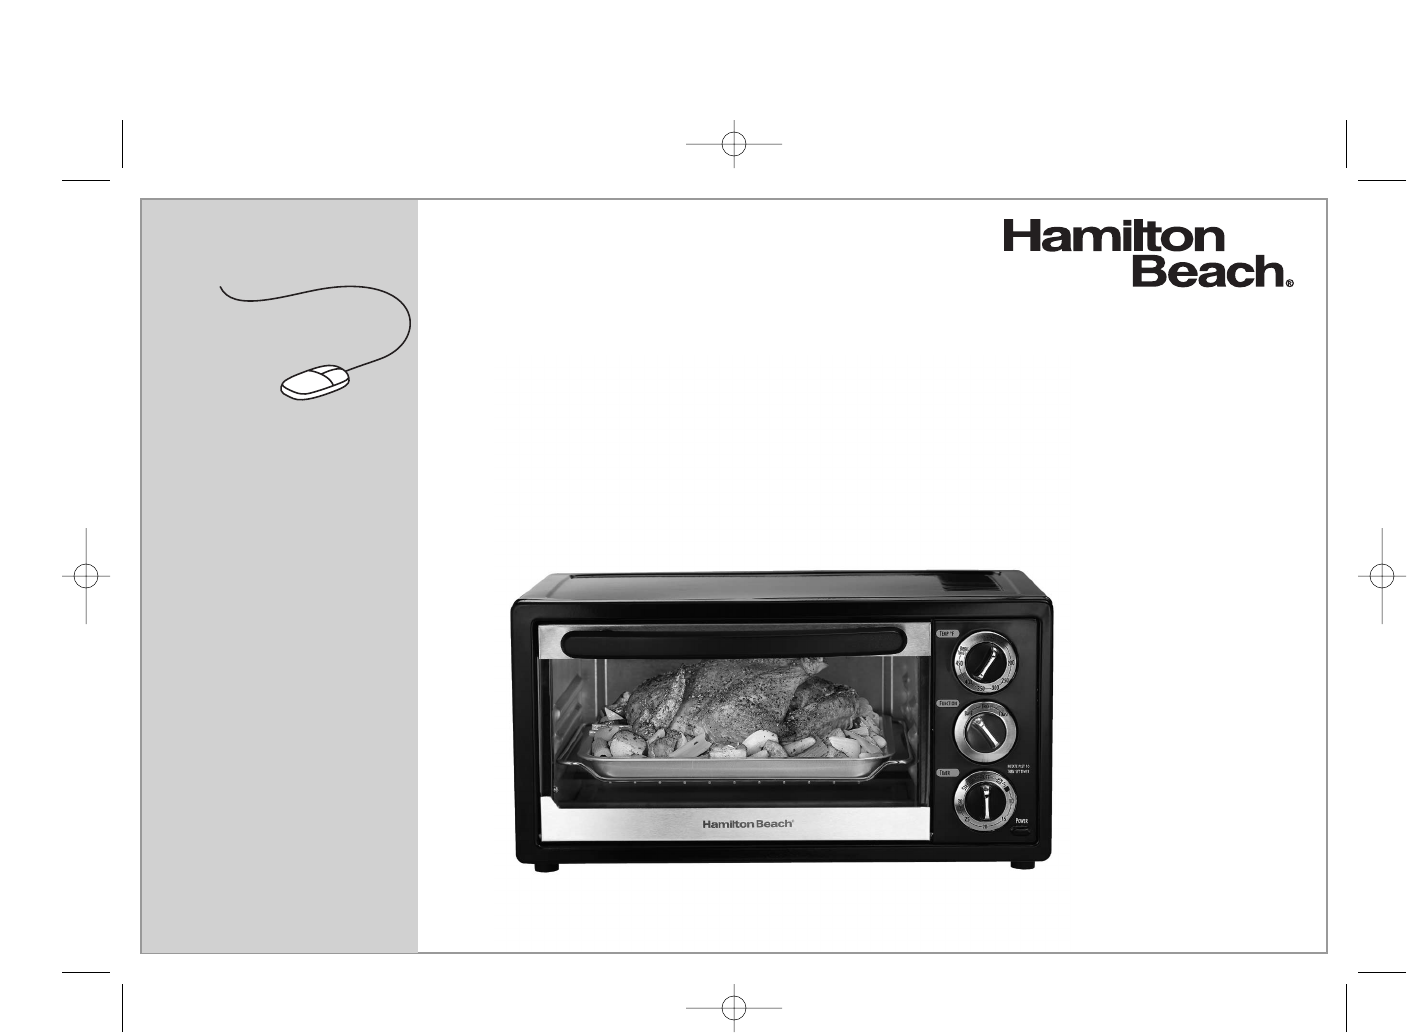 Food Network Countertop Convection Oven Manual : Hamilton Beach Oven 31507 User Guide ManualsOnline.com